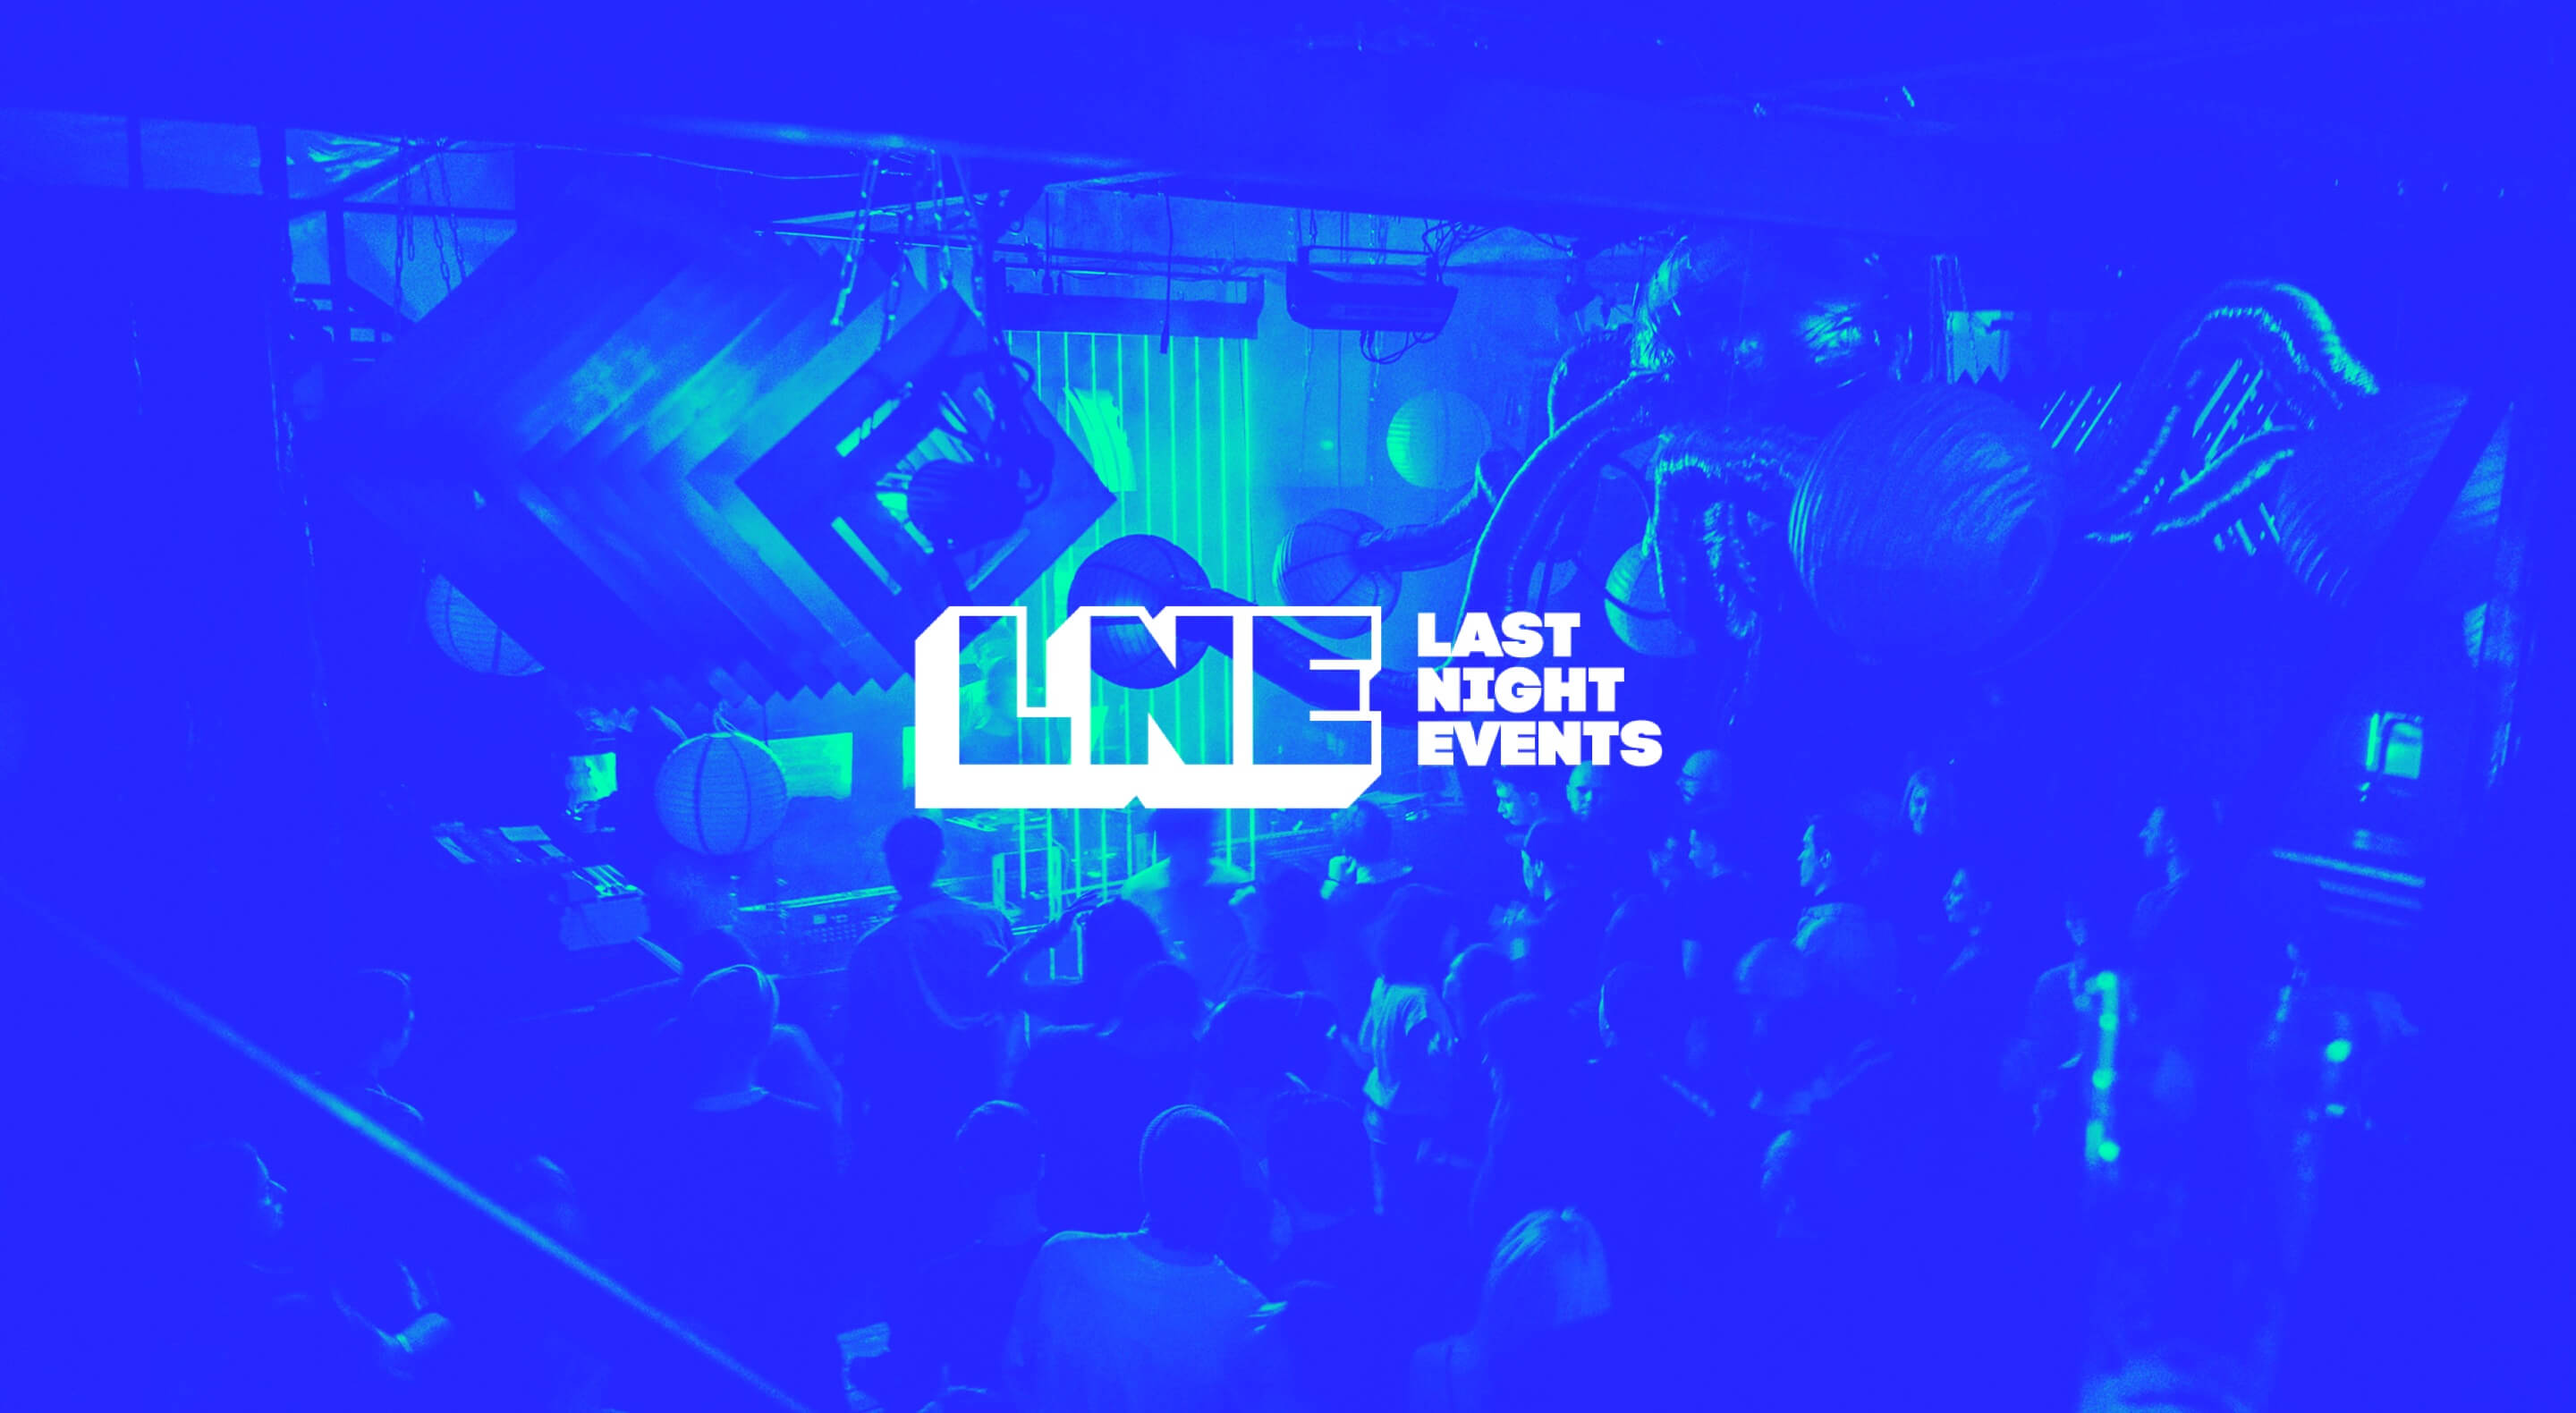 last night events logo with photo background